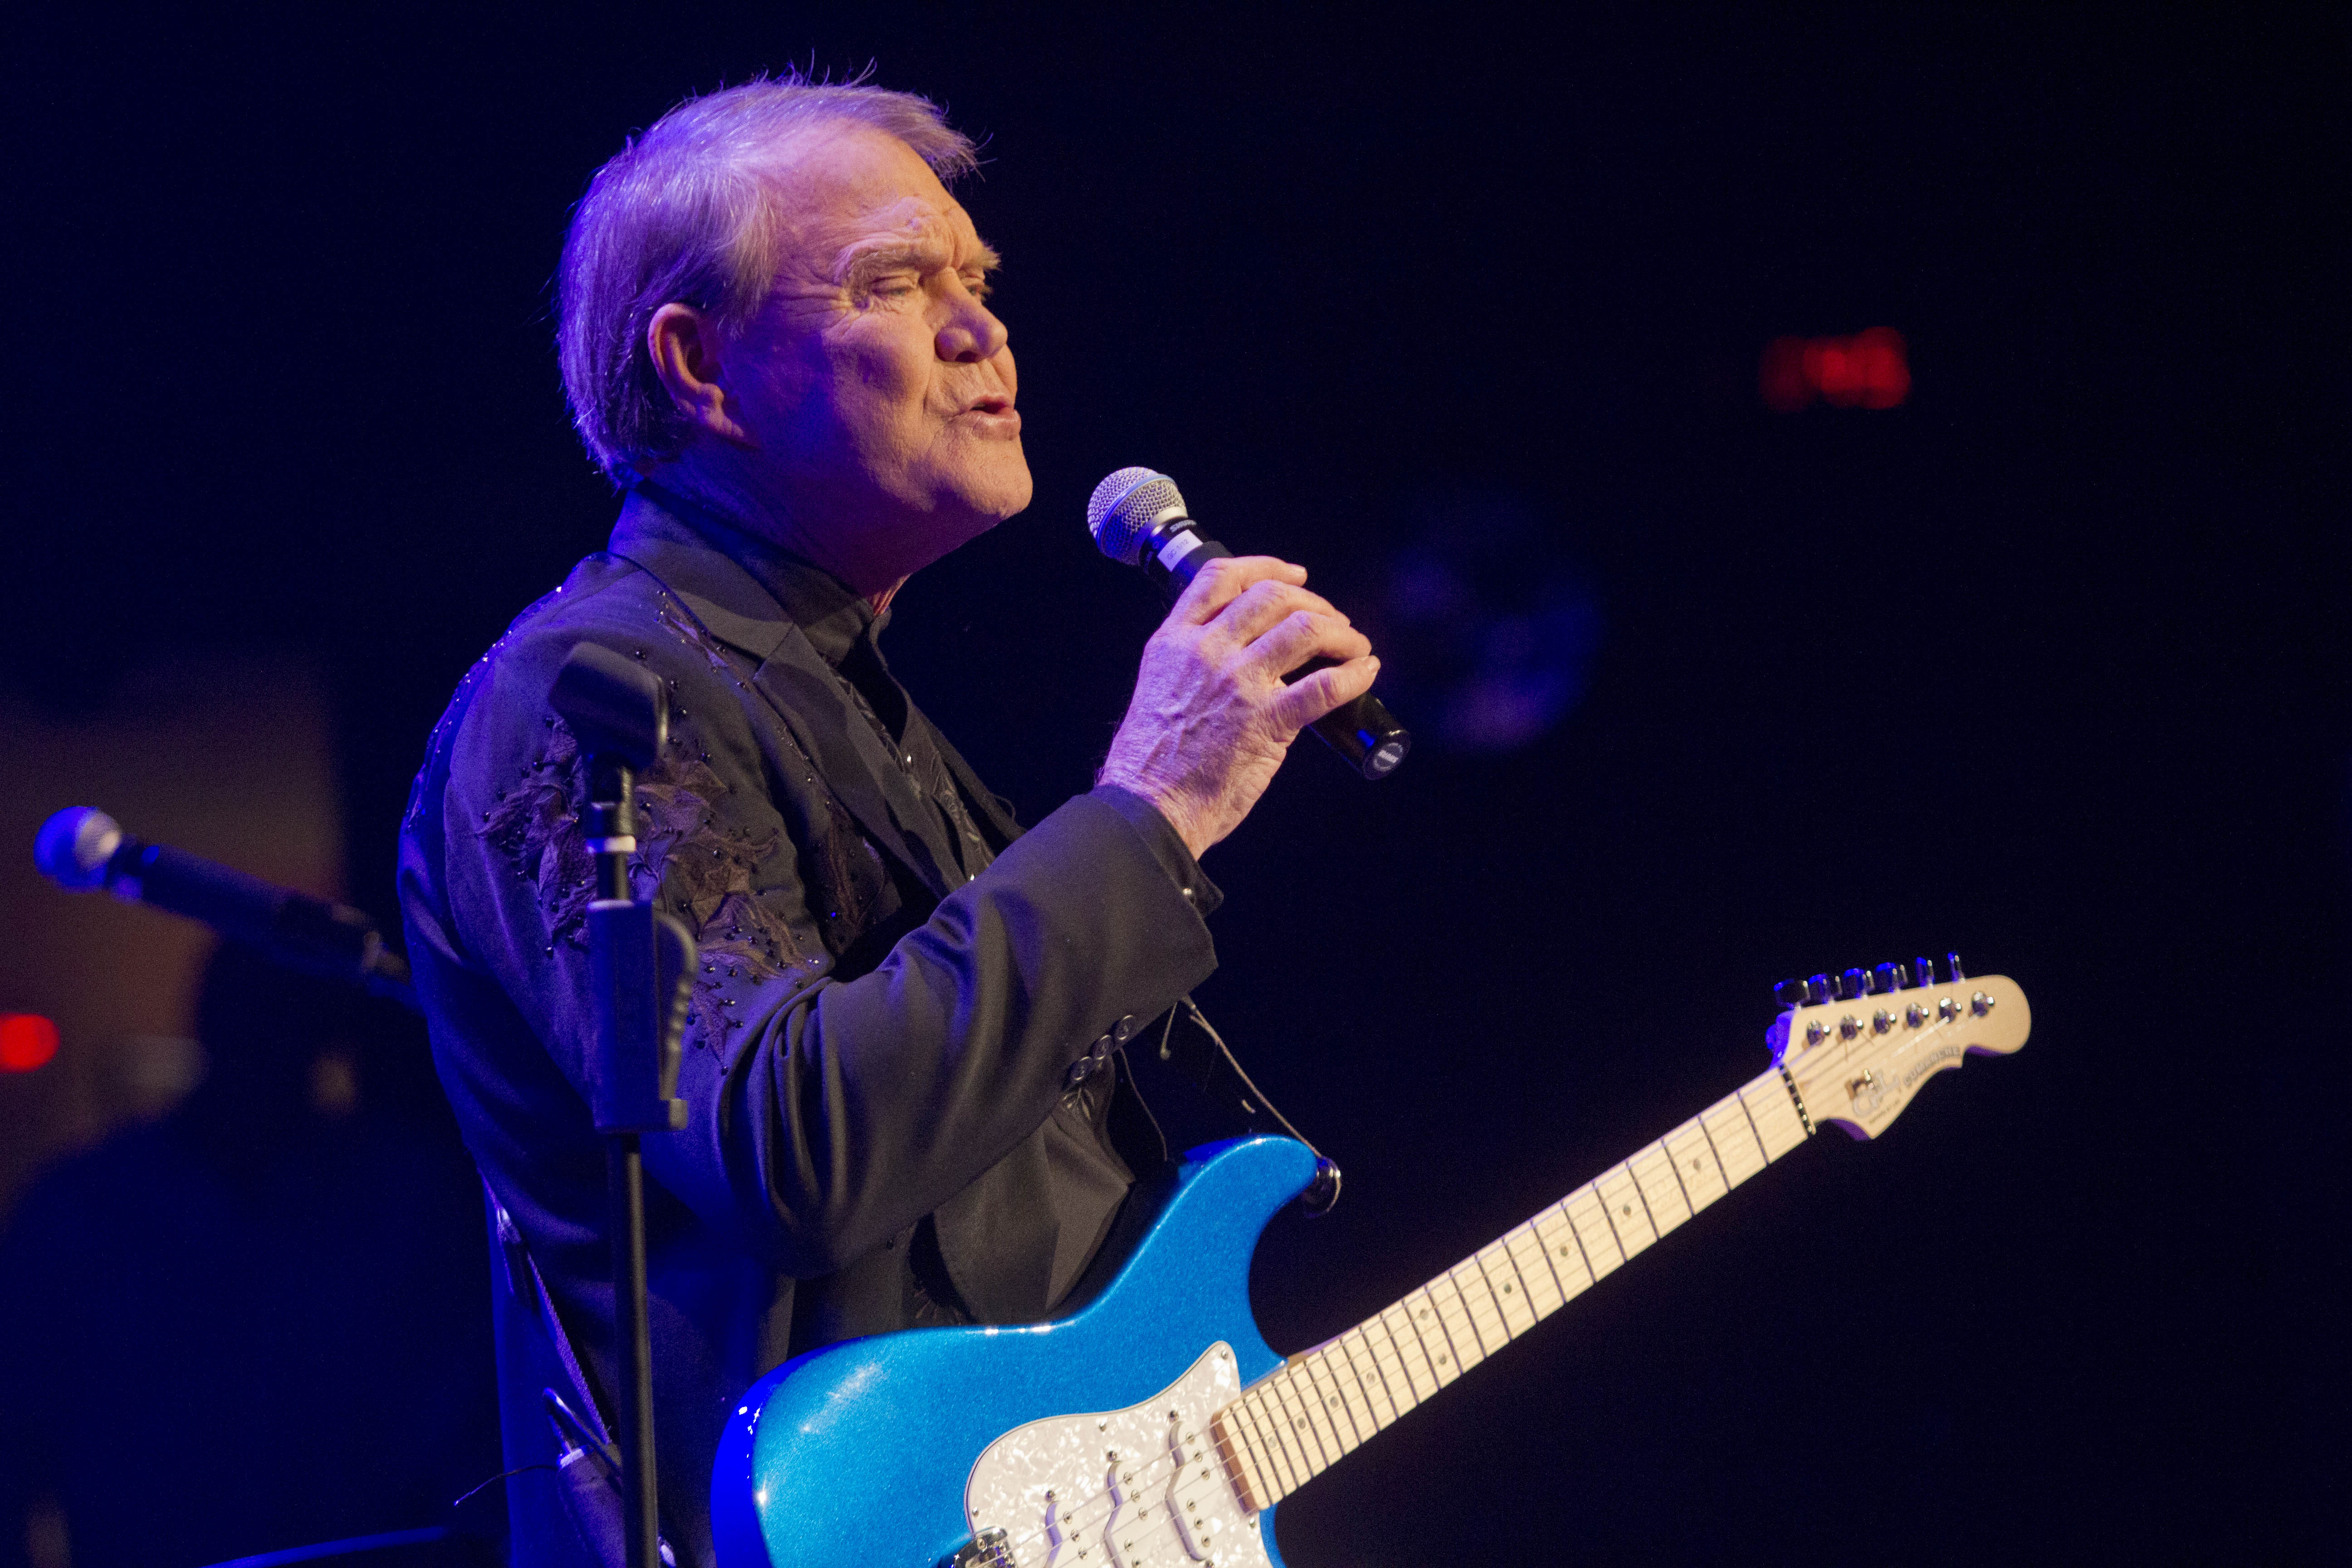 Glen Campbell Can No Longer Play Guitar, Family Says